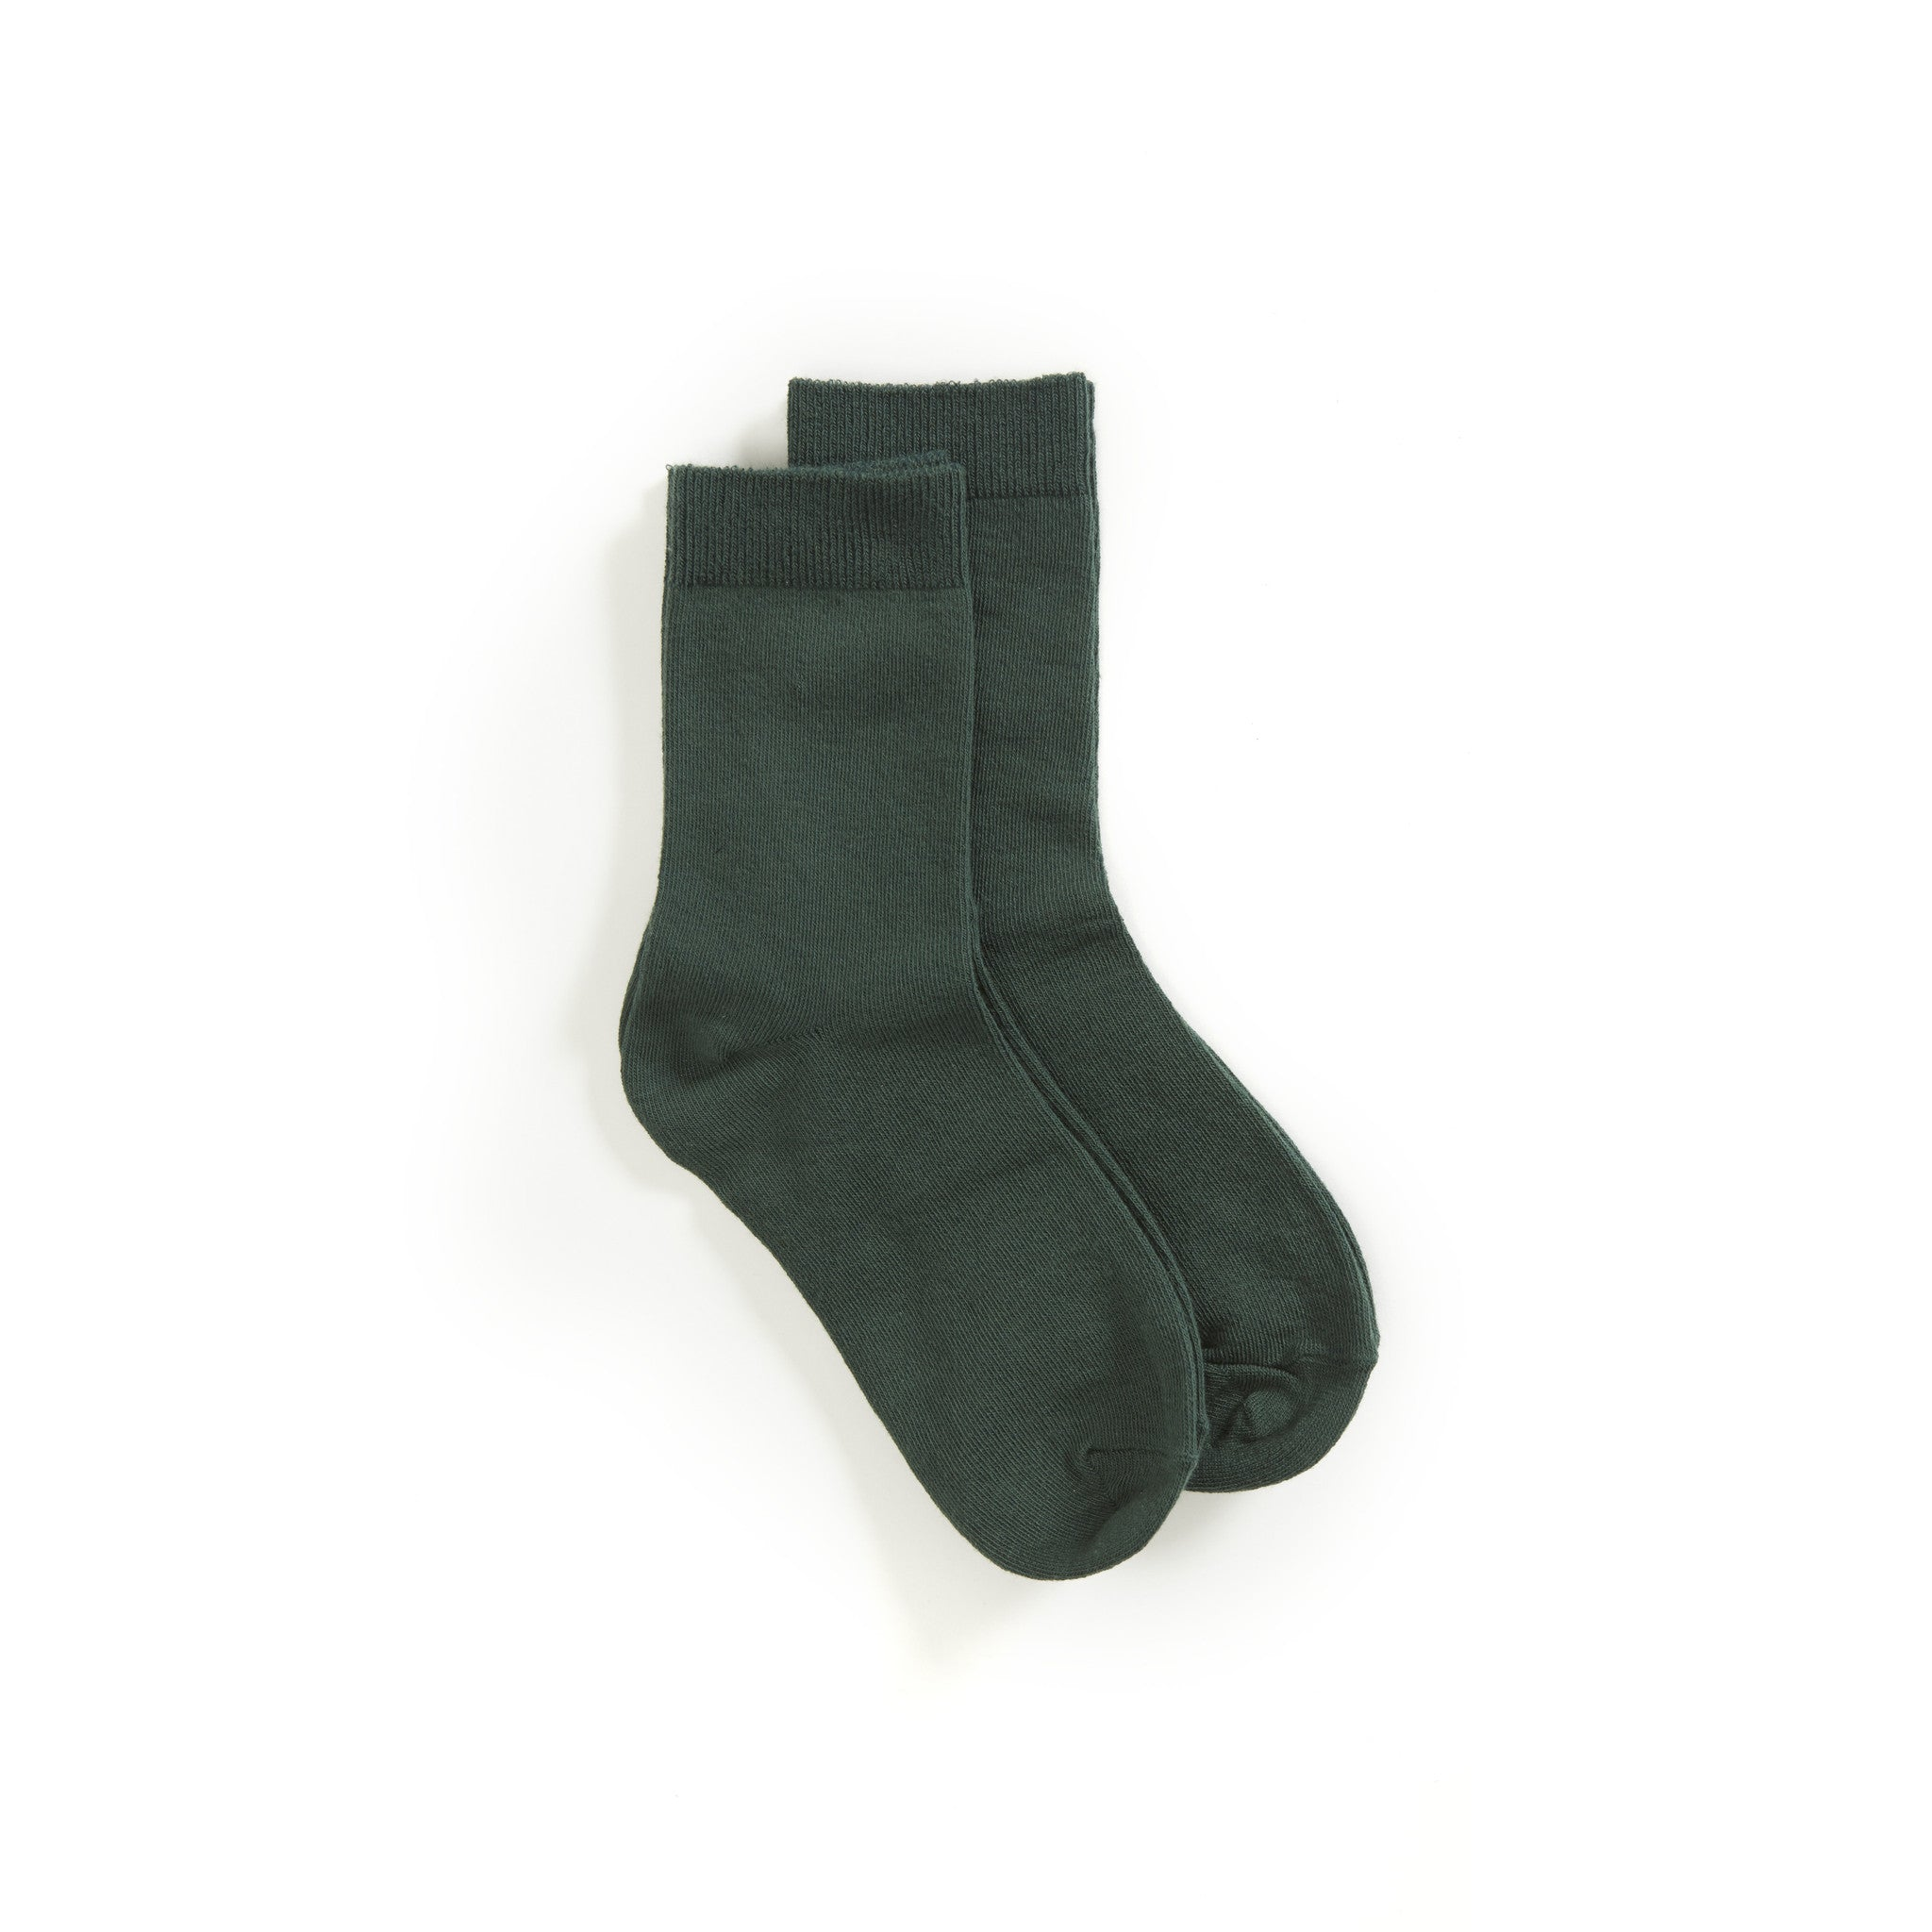 Bedes Green Uniform Ankle Socks